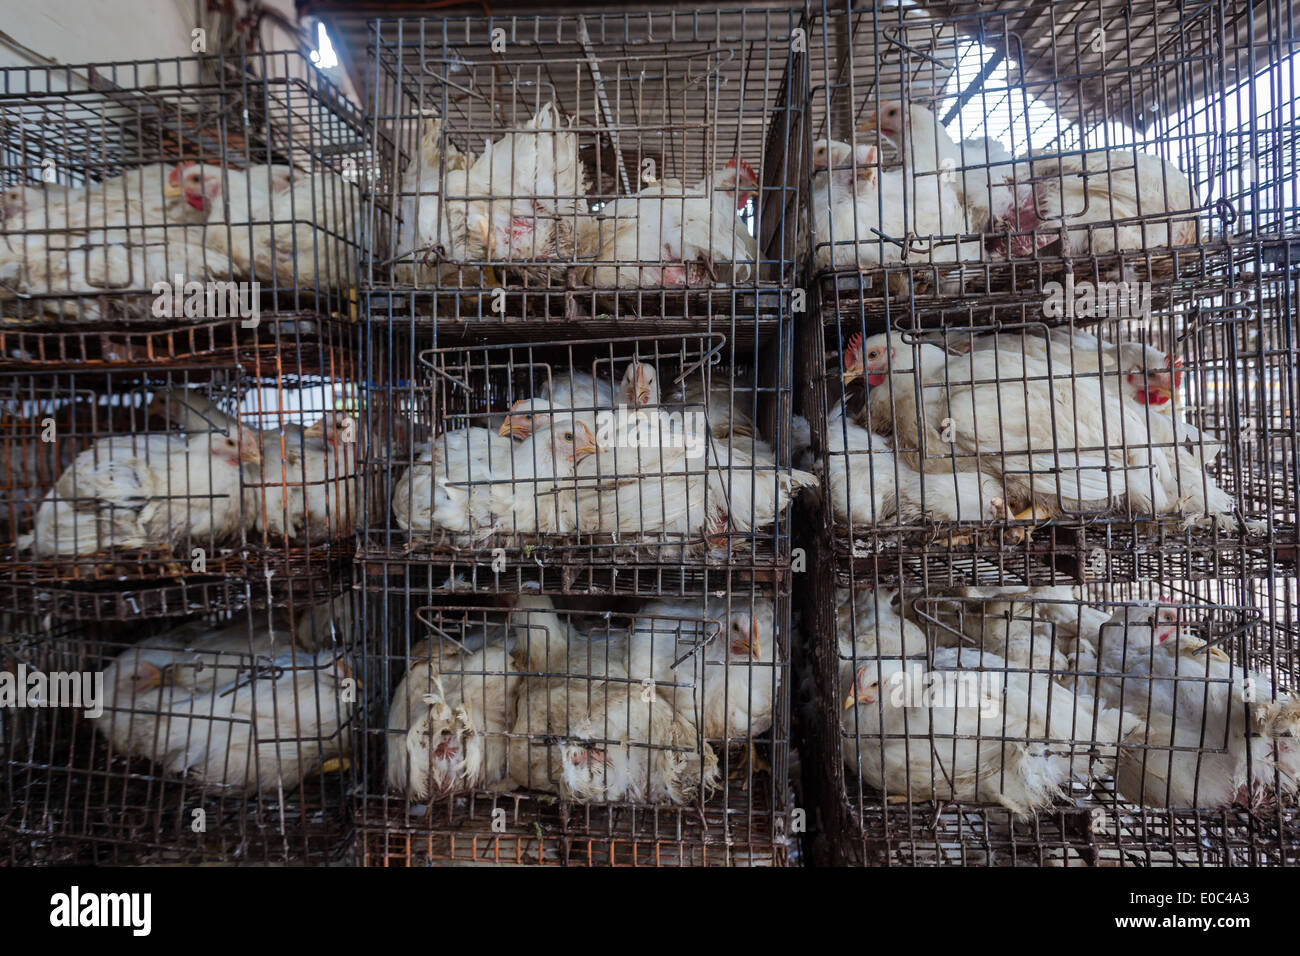 Agriculture poultry small abattoir processing for organic fed chicken ducks to local markets - Stock Image